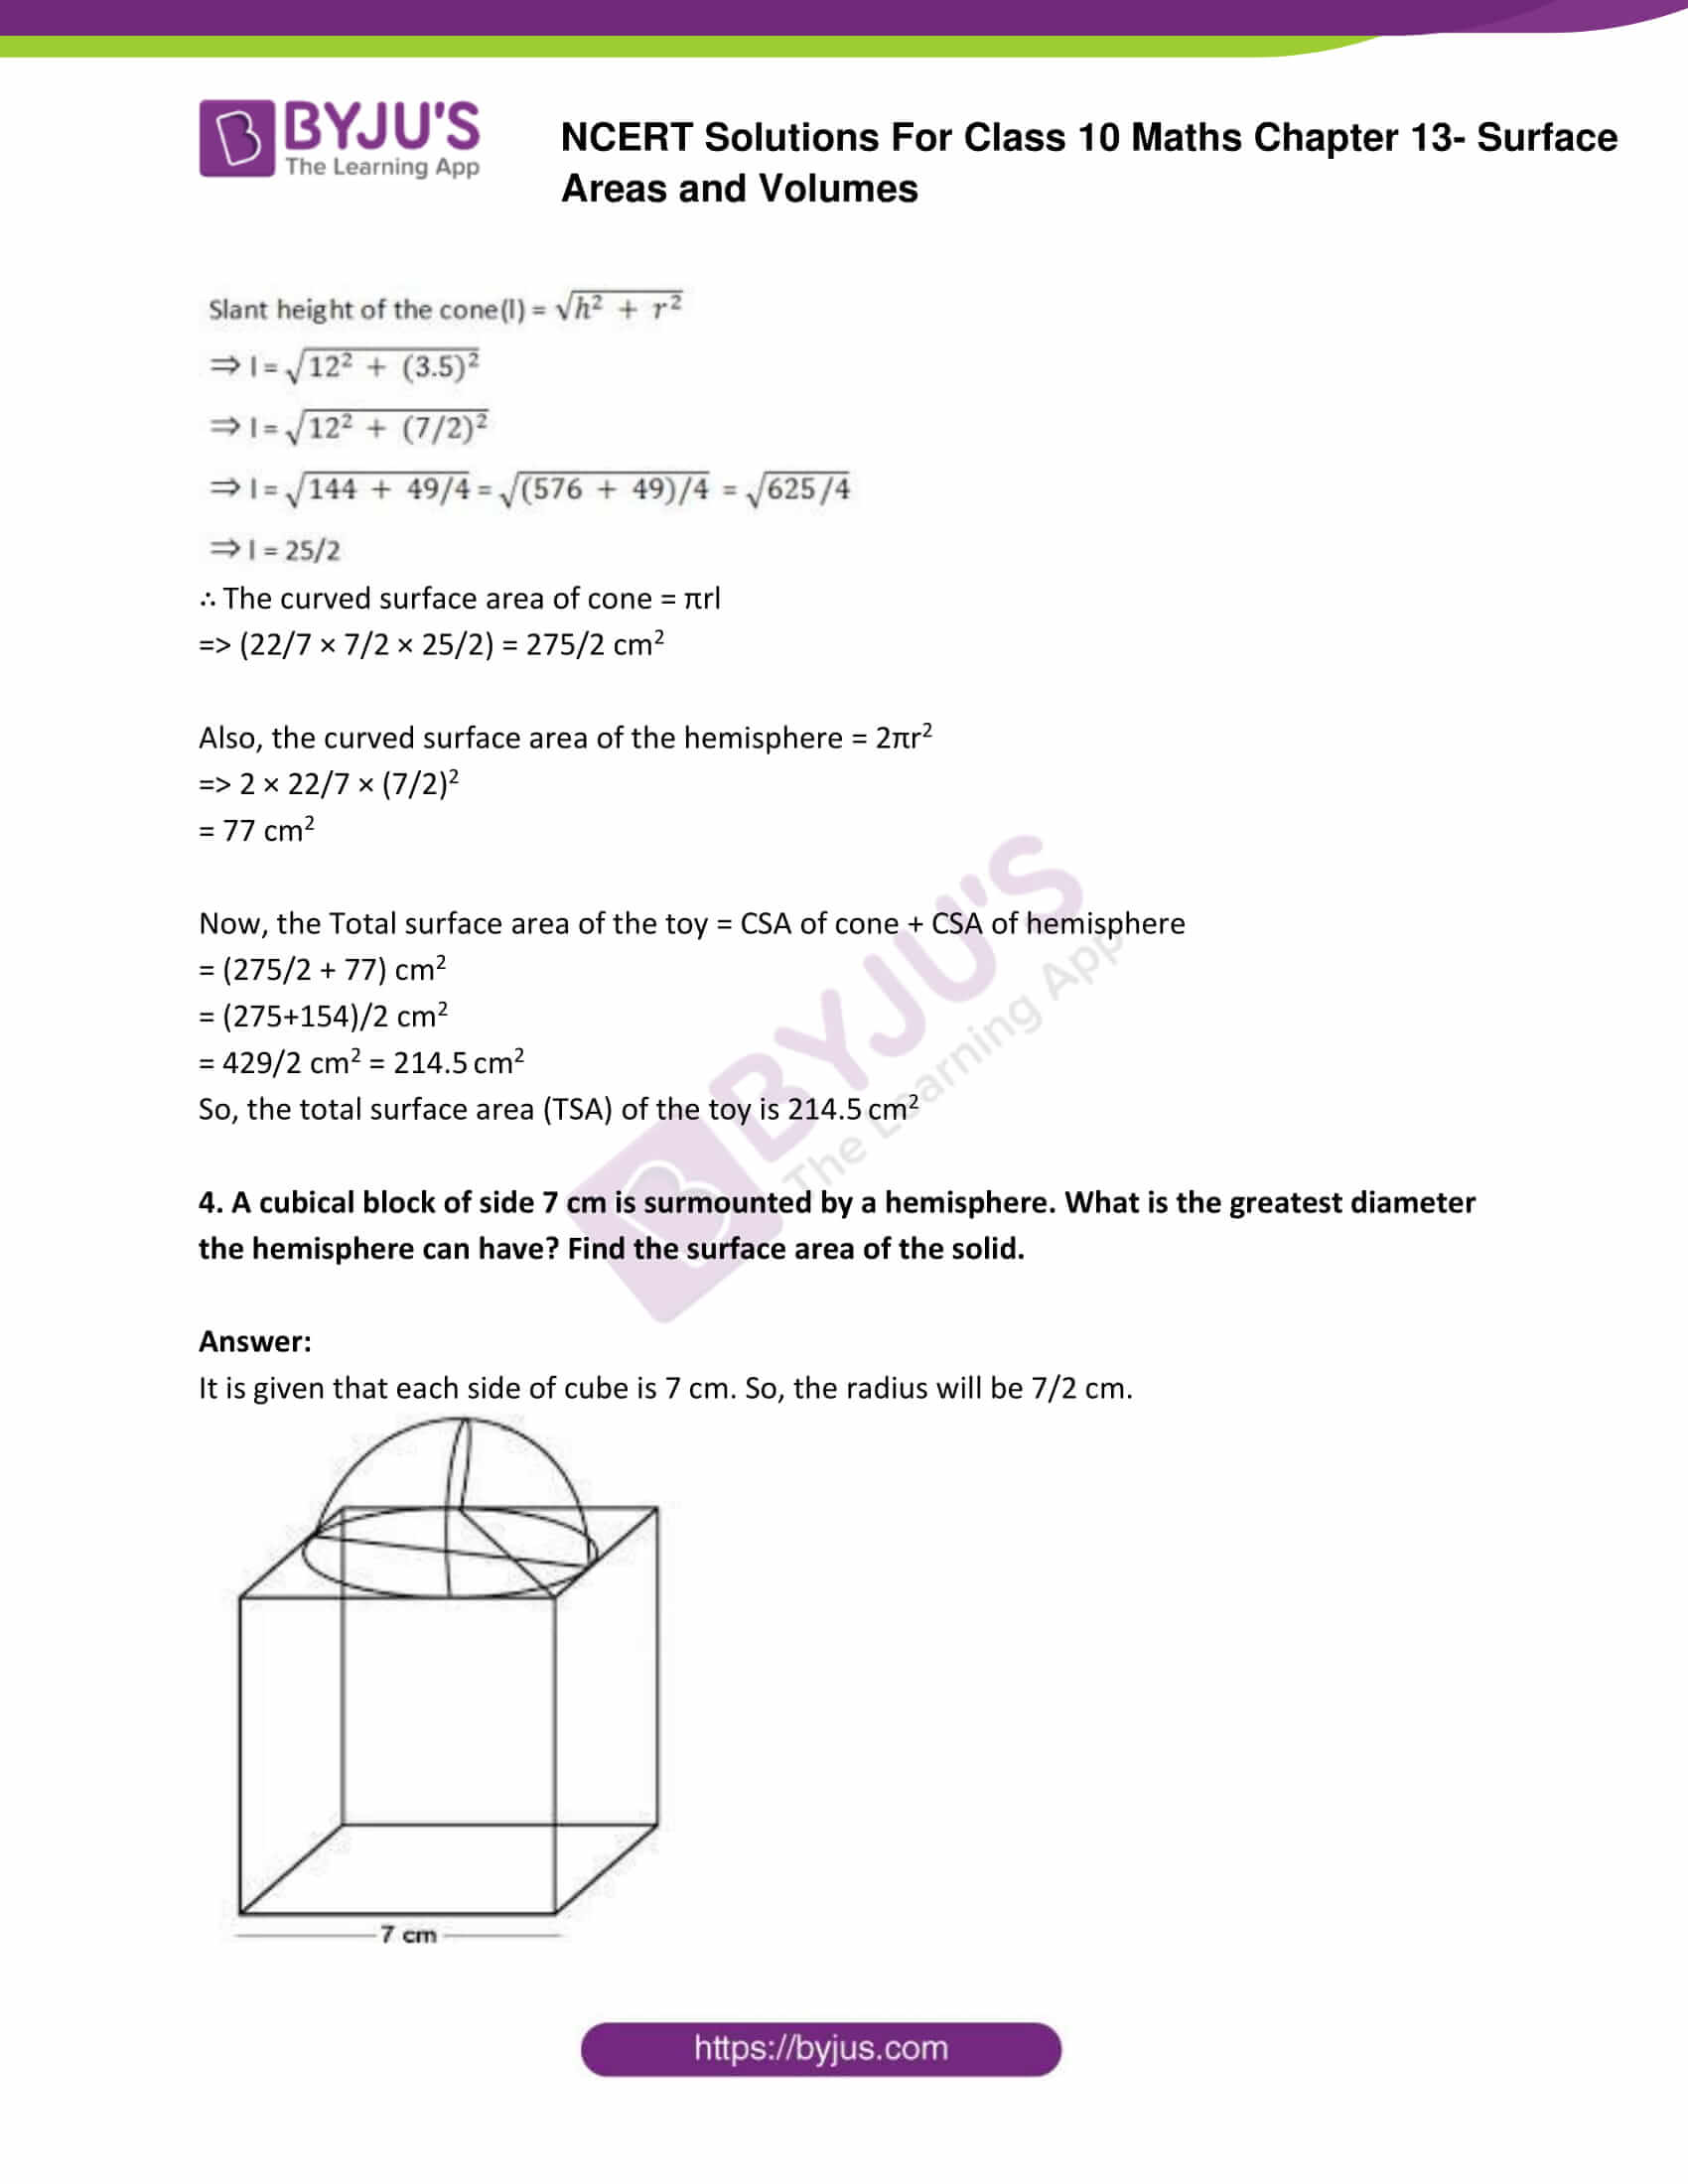 NCERT Solutions Class 10 Maths Chapter 13 Surface Areas and Volumes Part 03